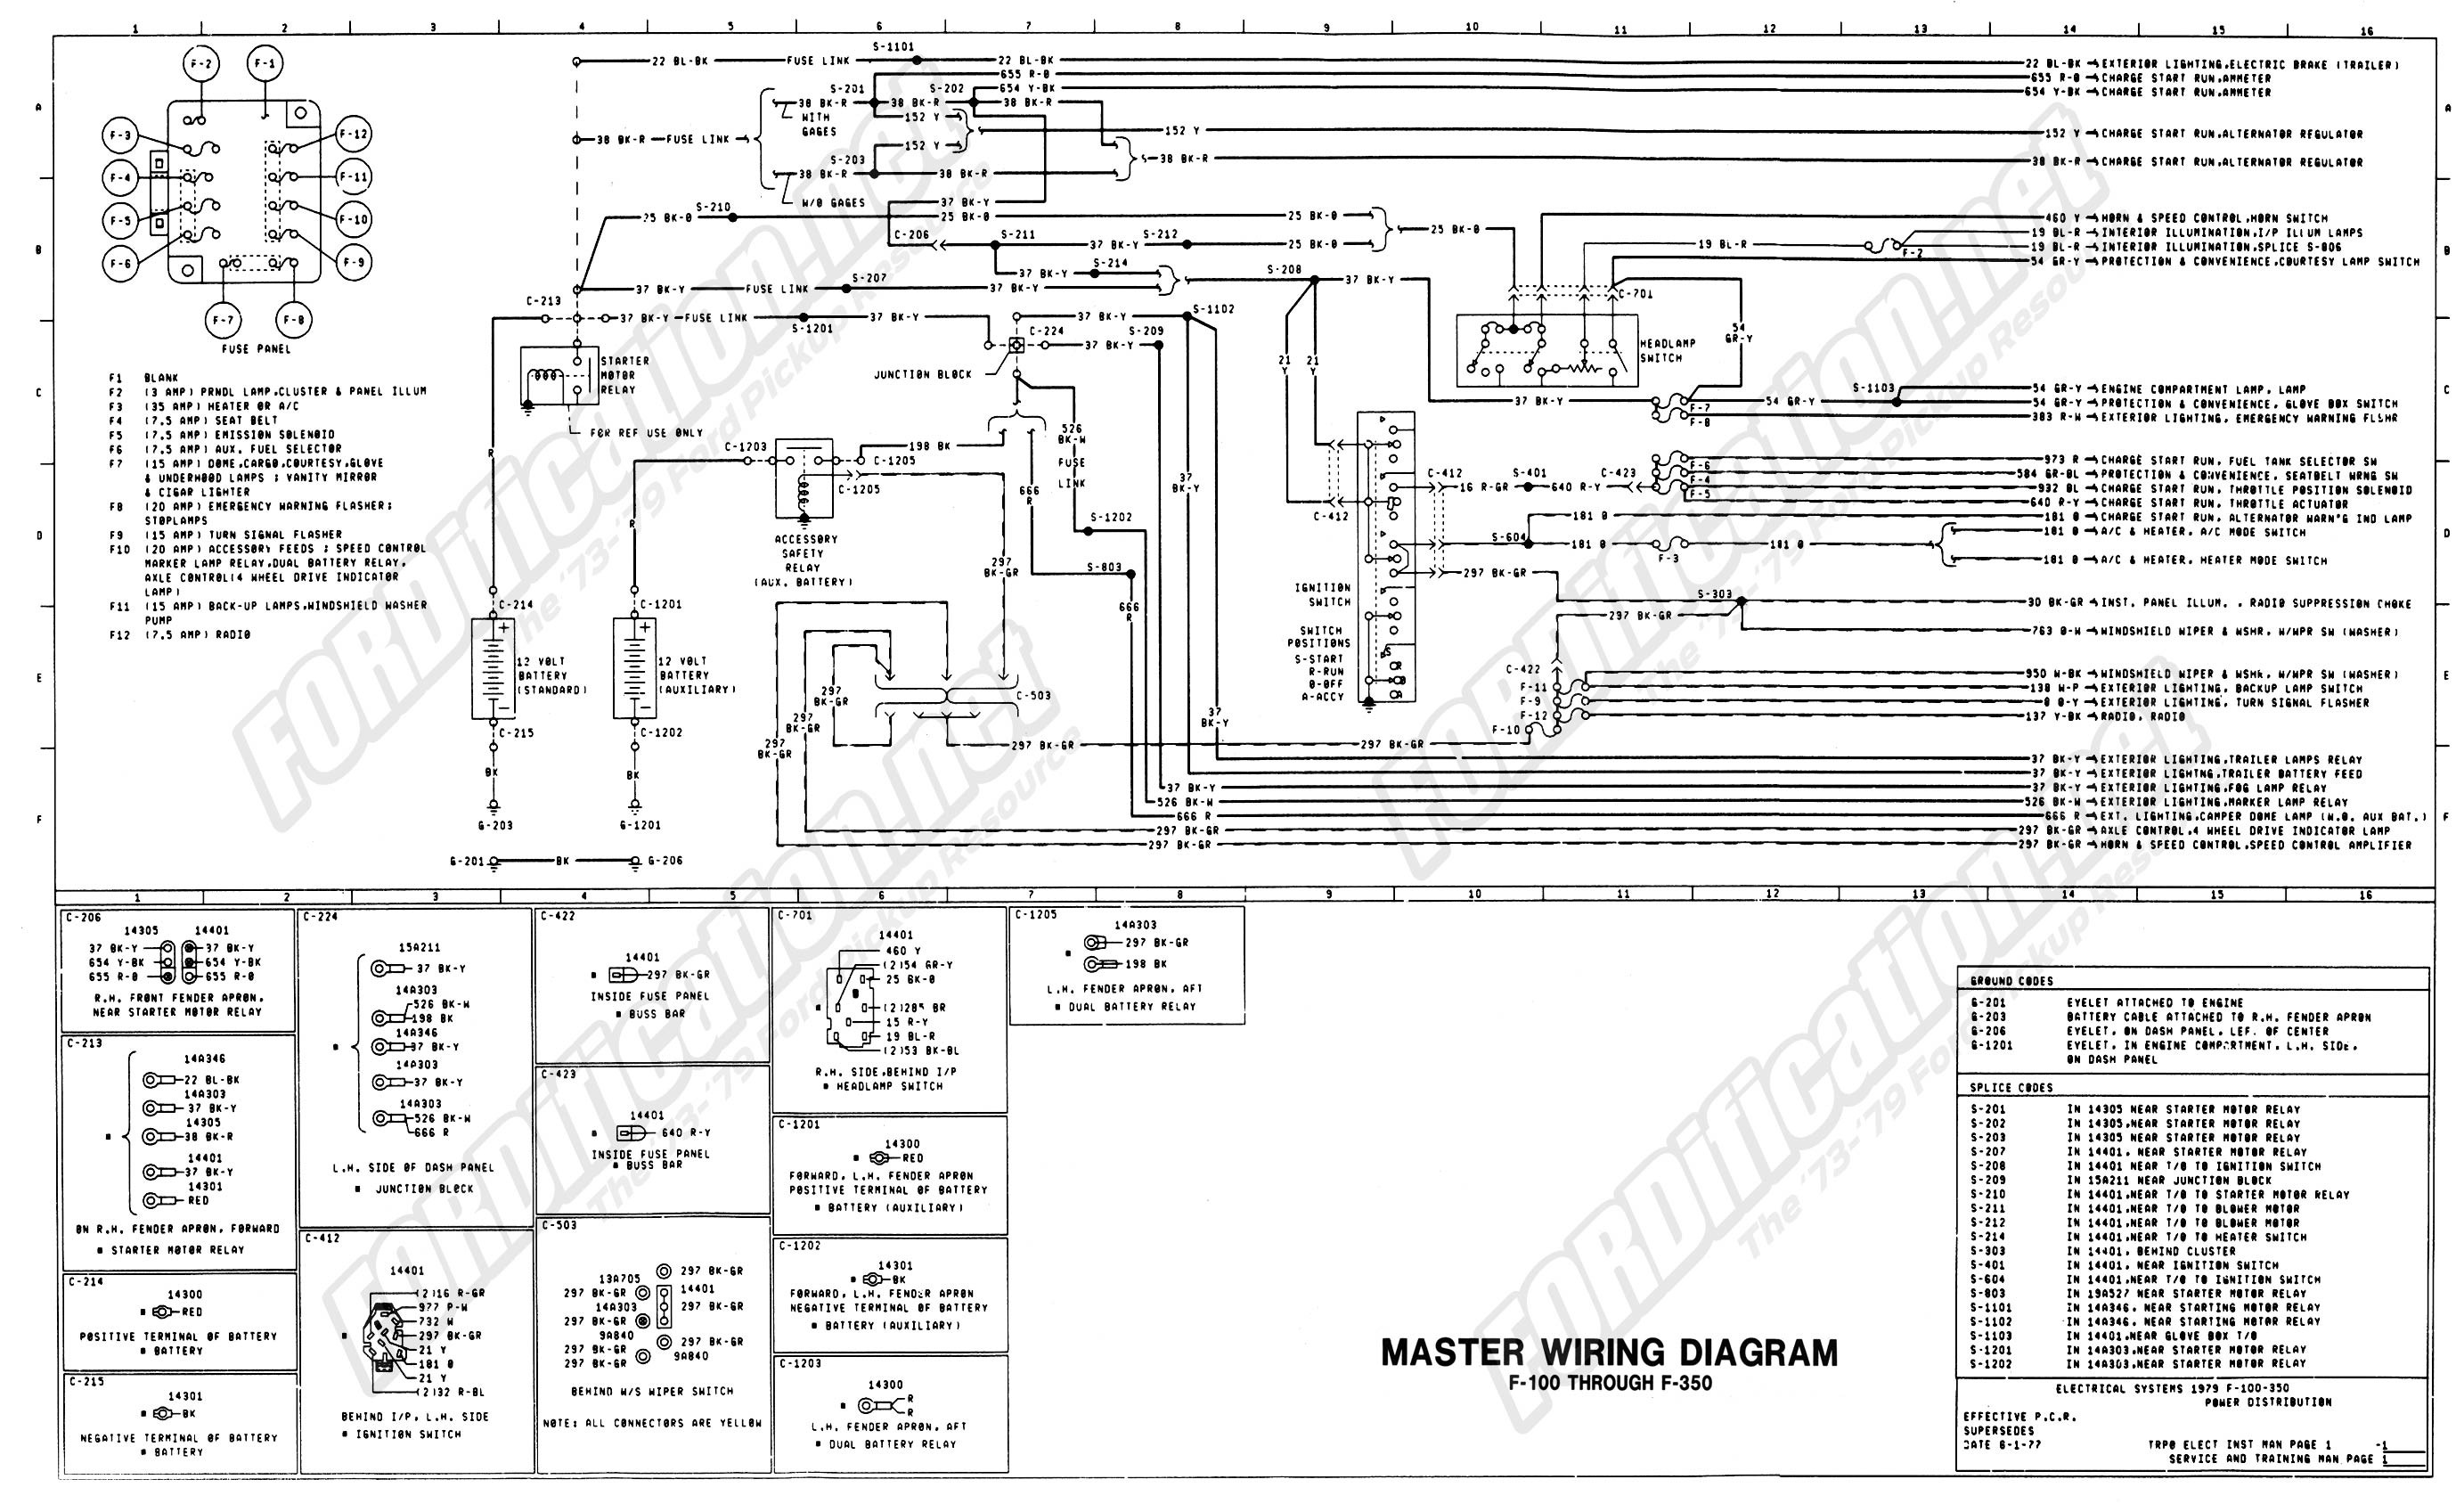 1986 ford F150 Engine Wiring Diagram 1986 ford F150 Engine Wiring Diagram  Collection Of 1986 ford